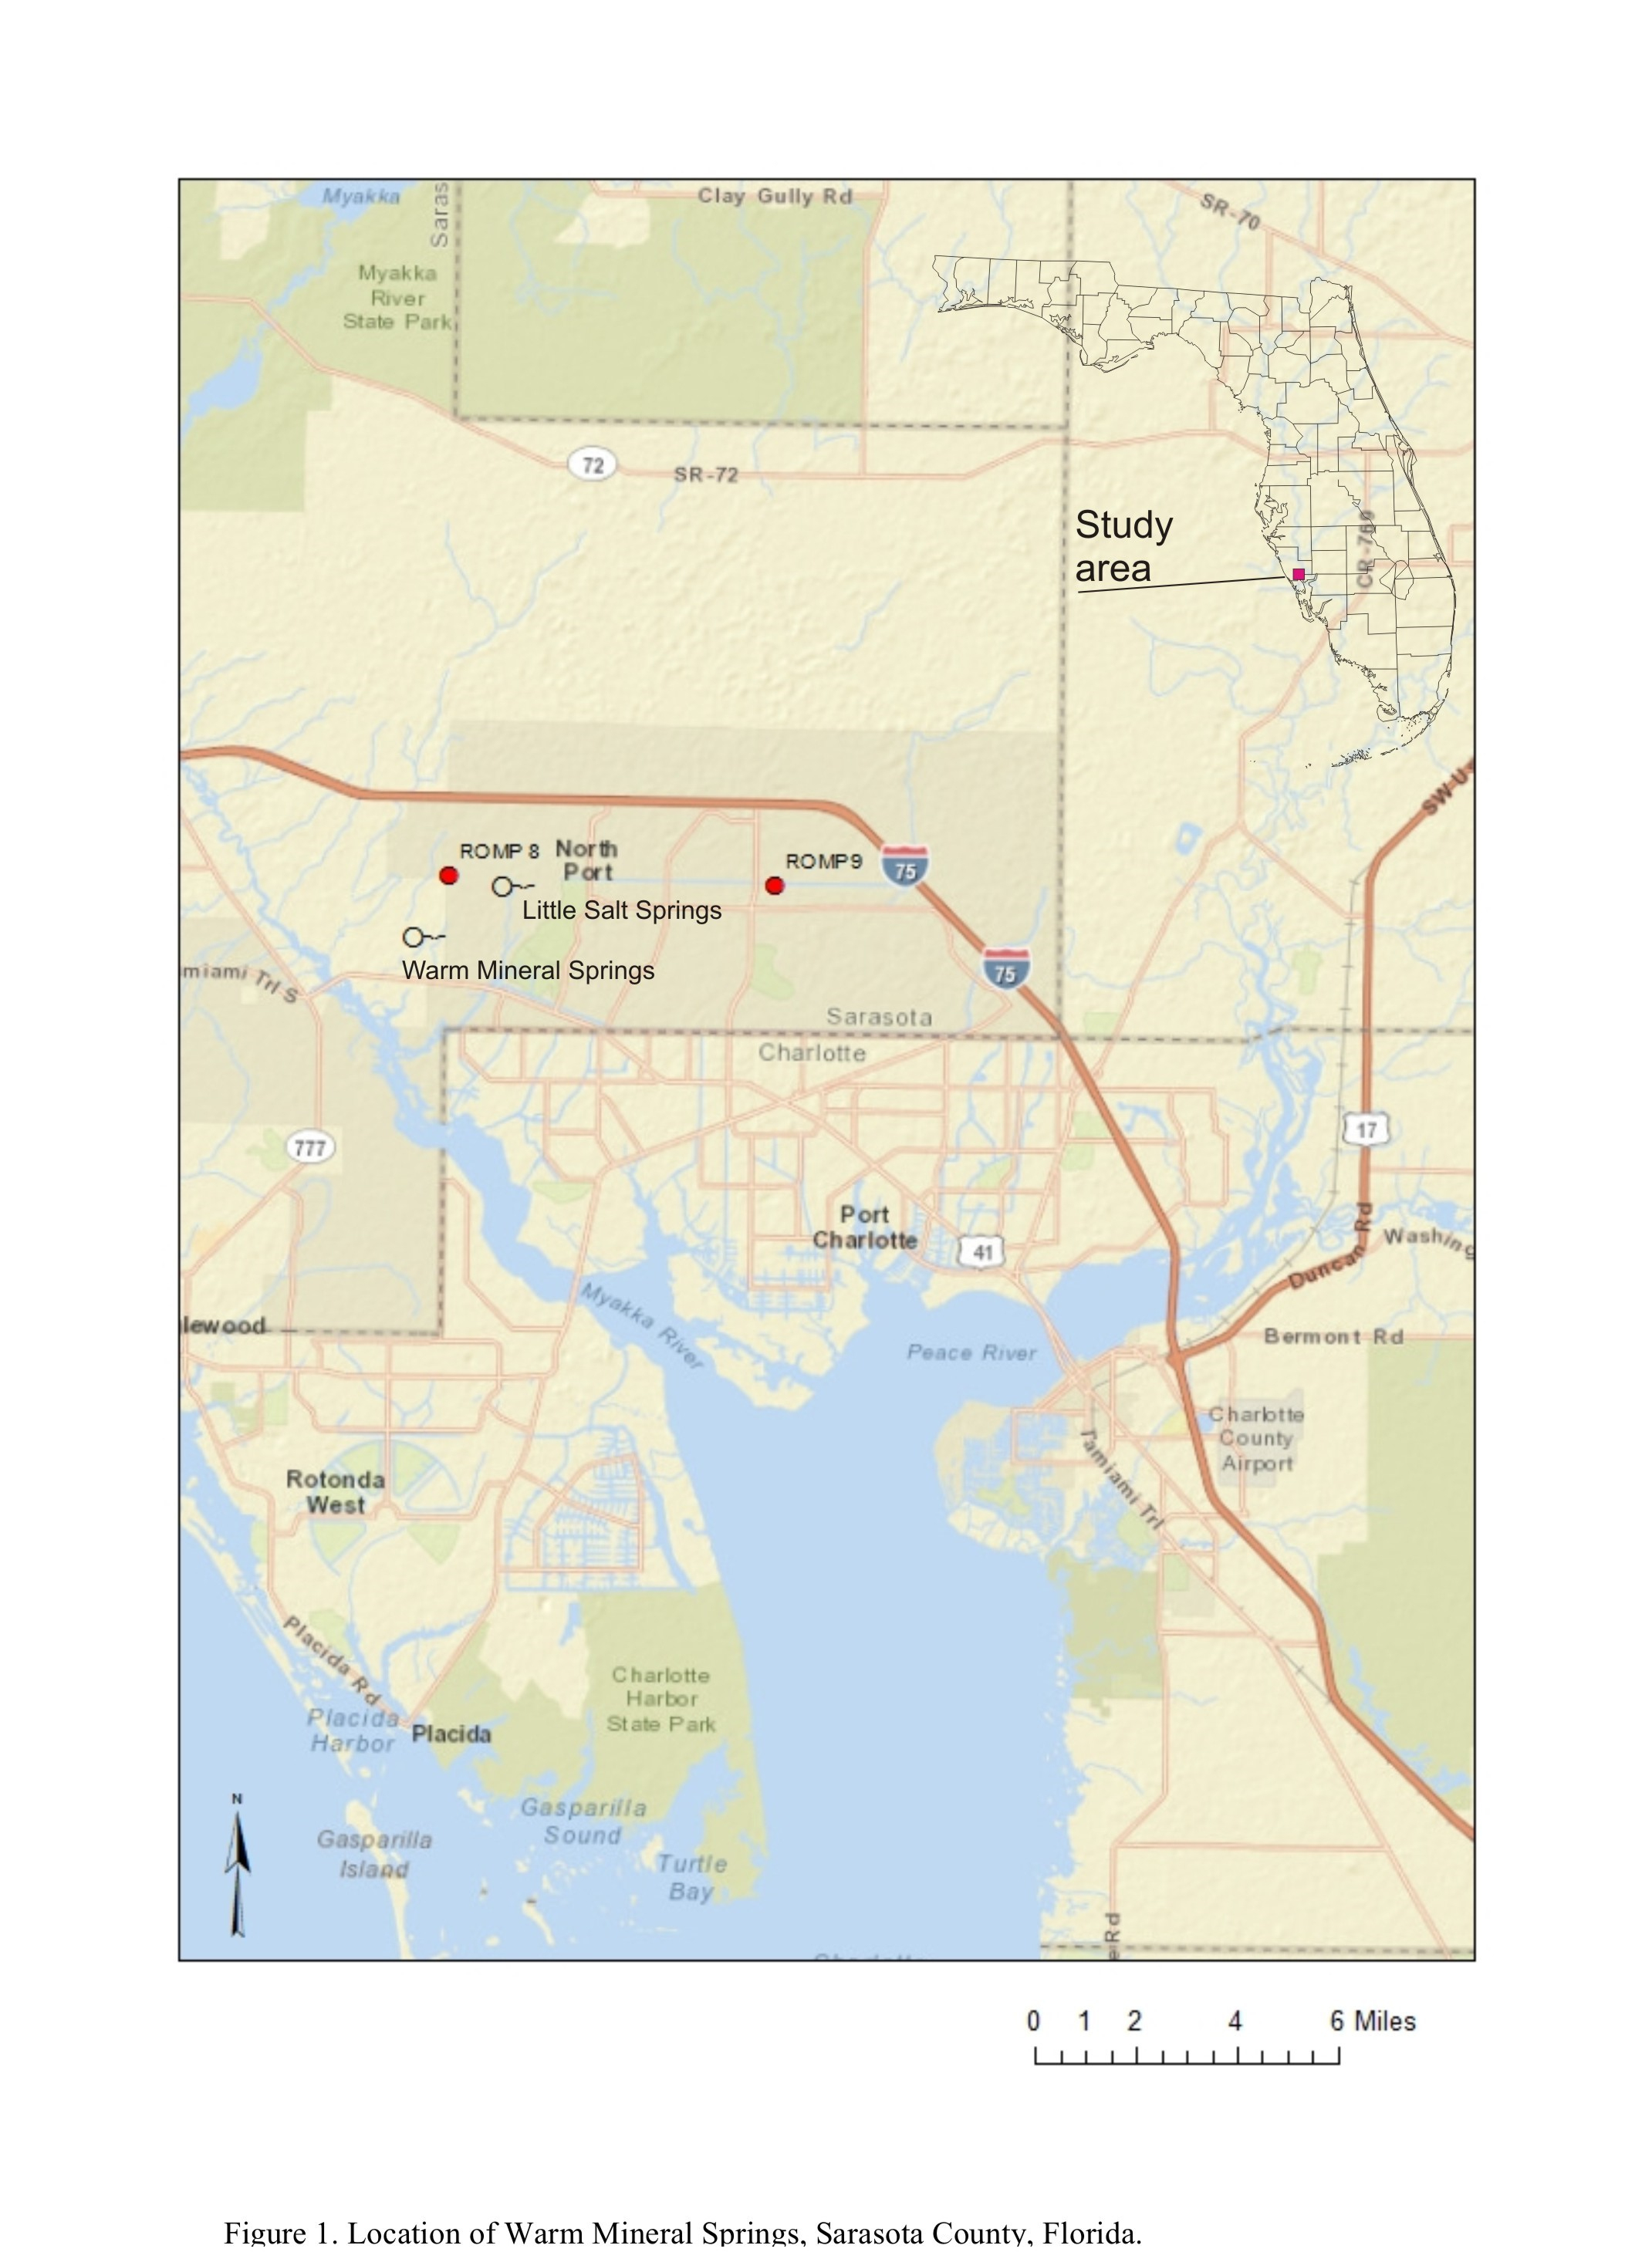 Warm Mineral Springs, Sarasota County, Florida - Warm Mineral Springs Florida Map